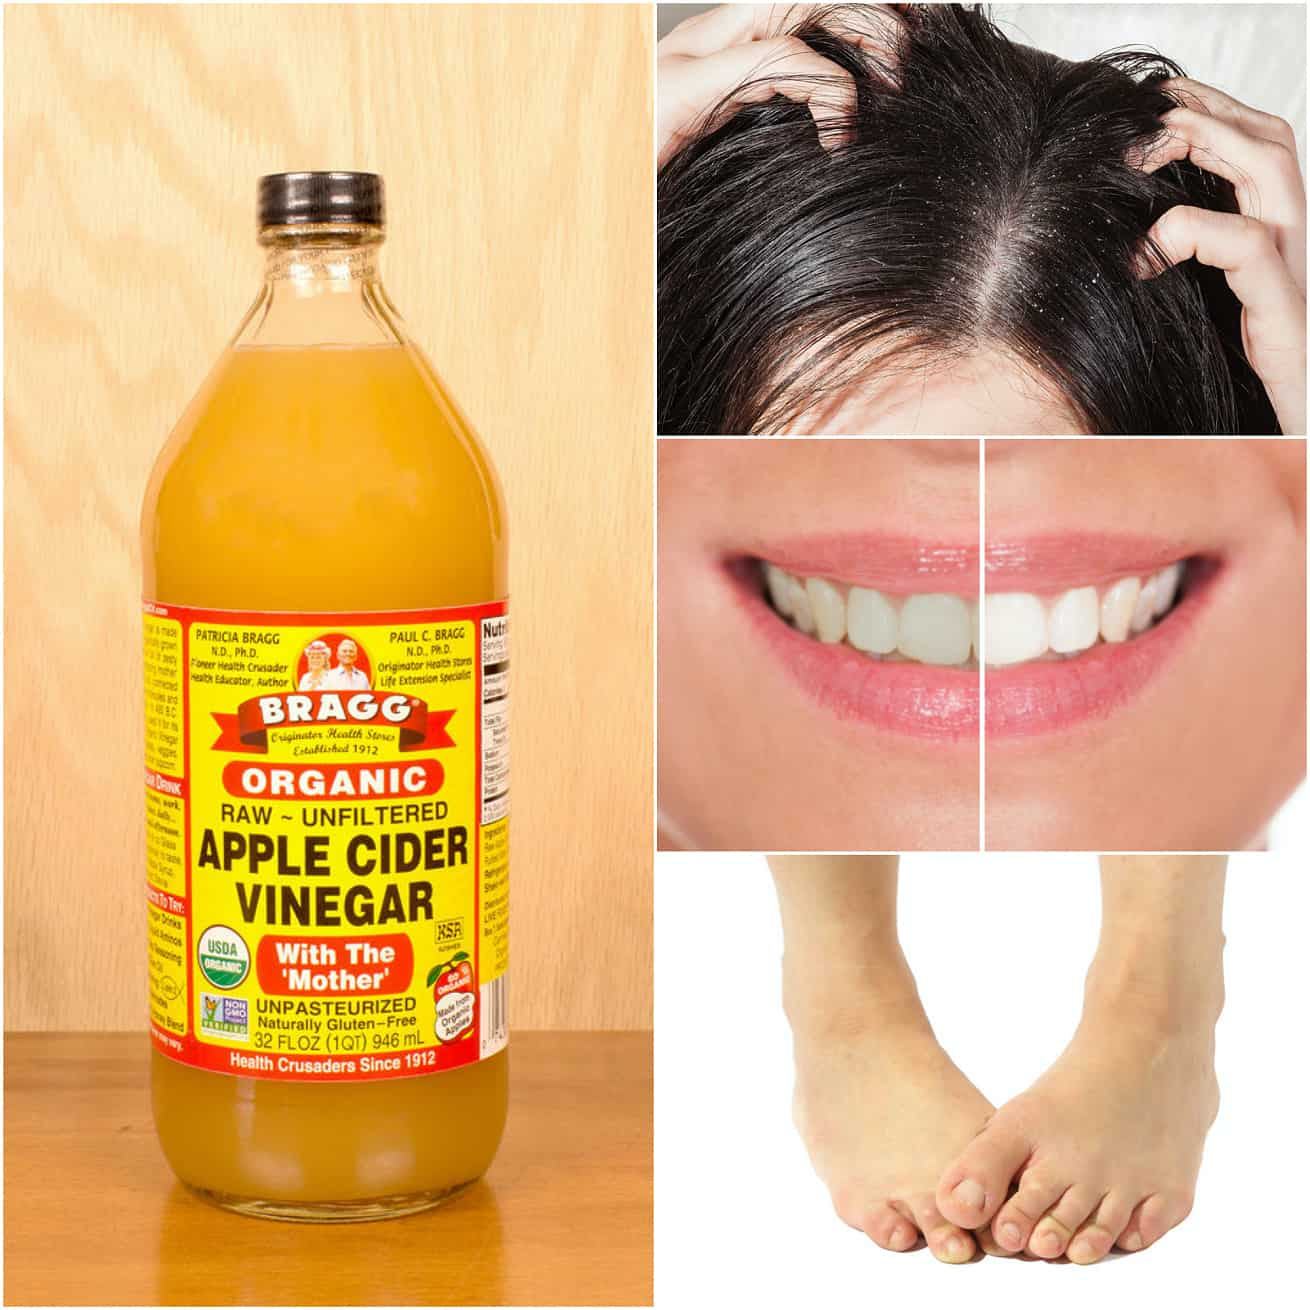 apple cider vinegar and ways to use it